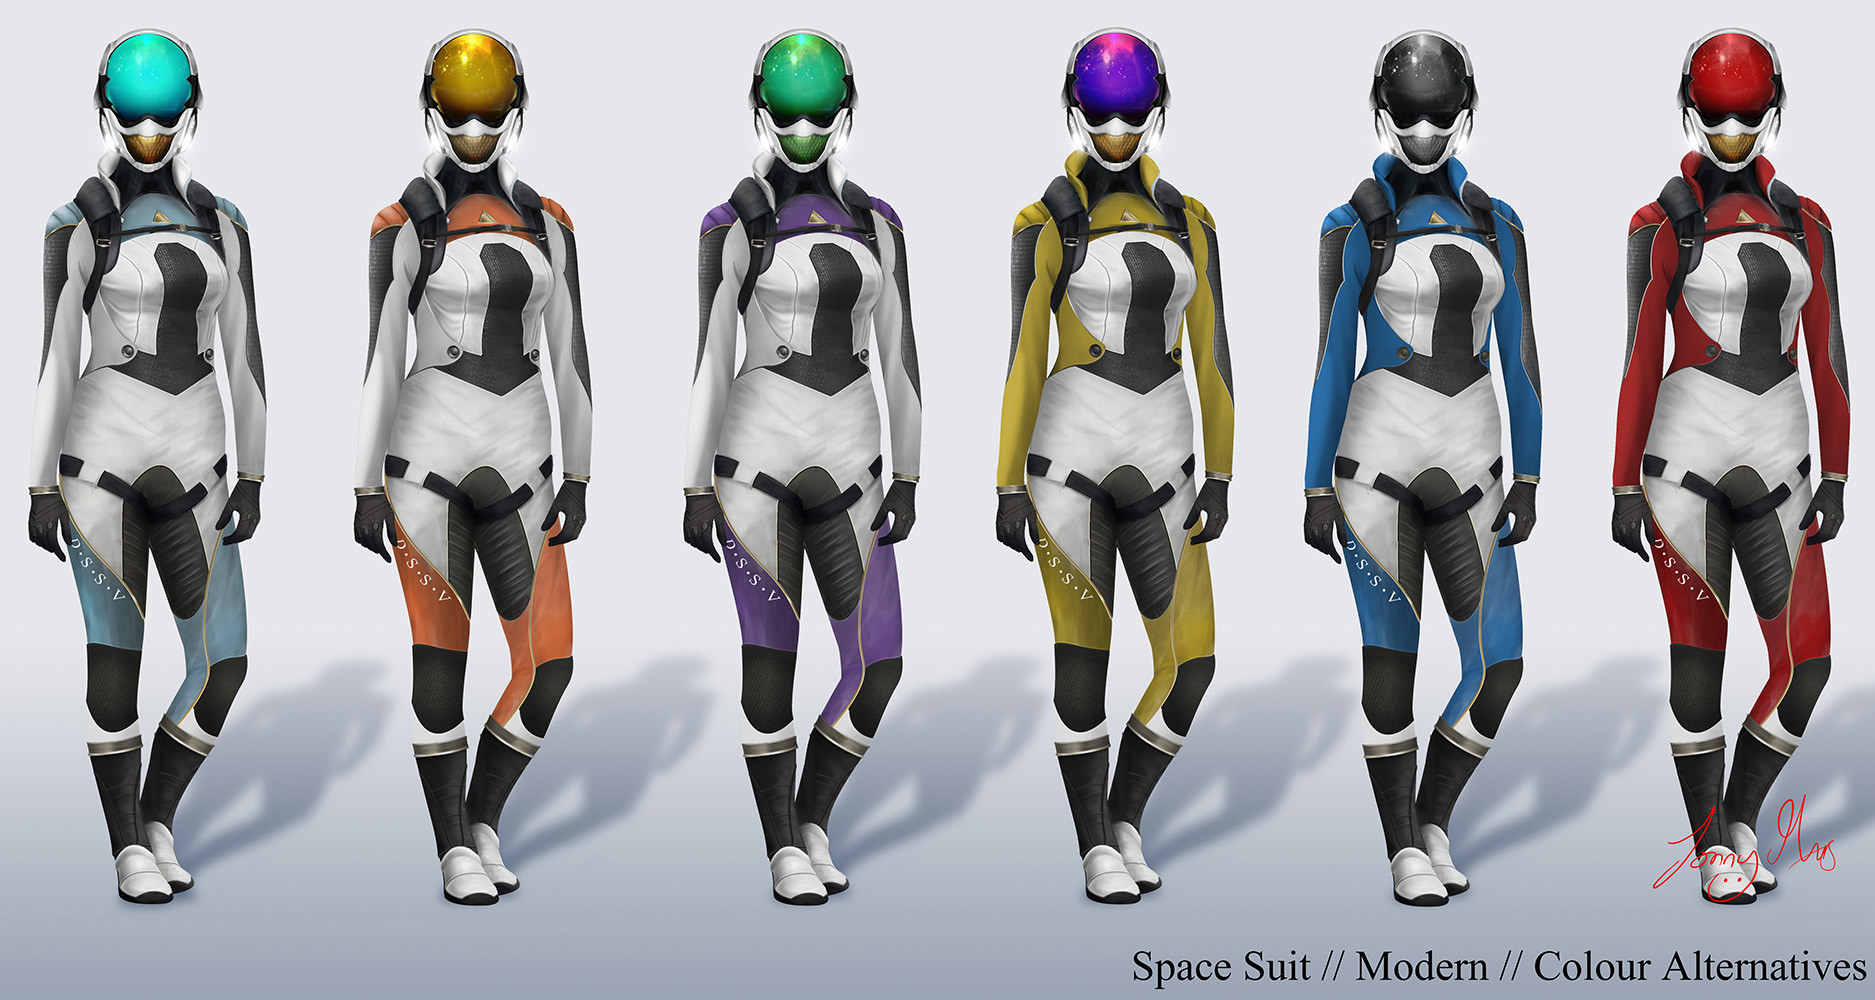 Space Suit Stylized On Modern Dive Suit